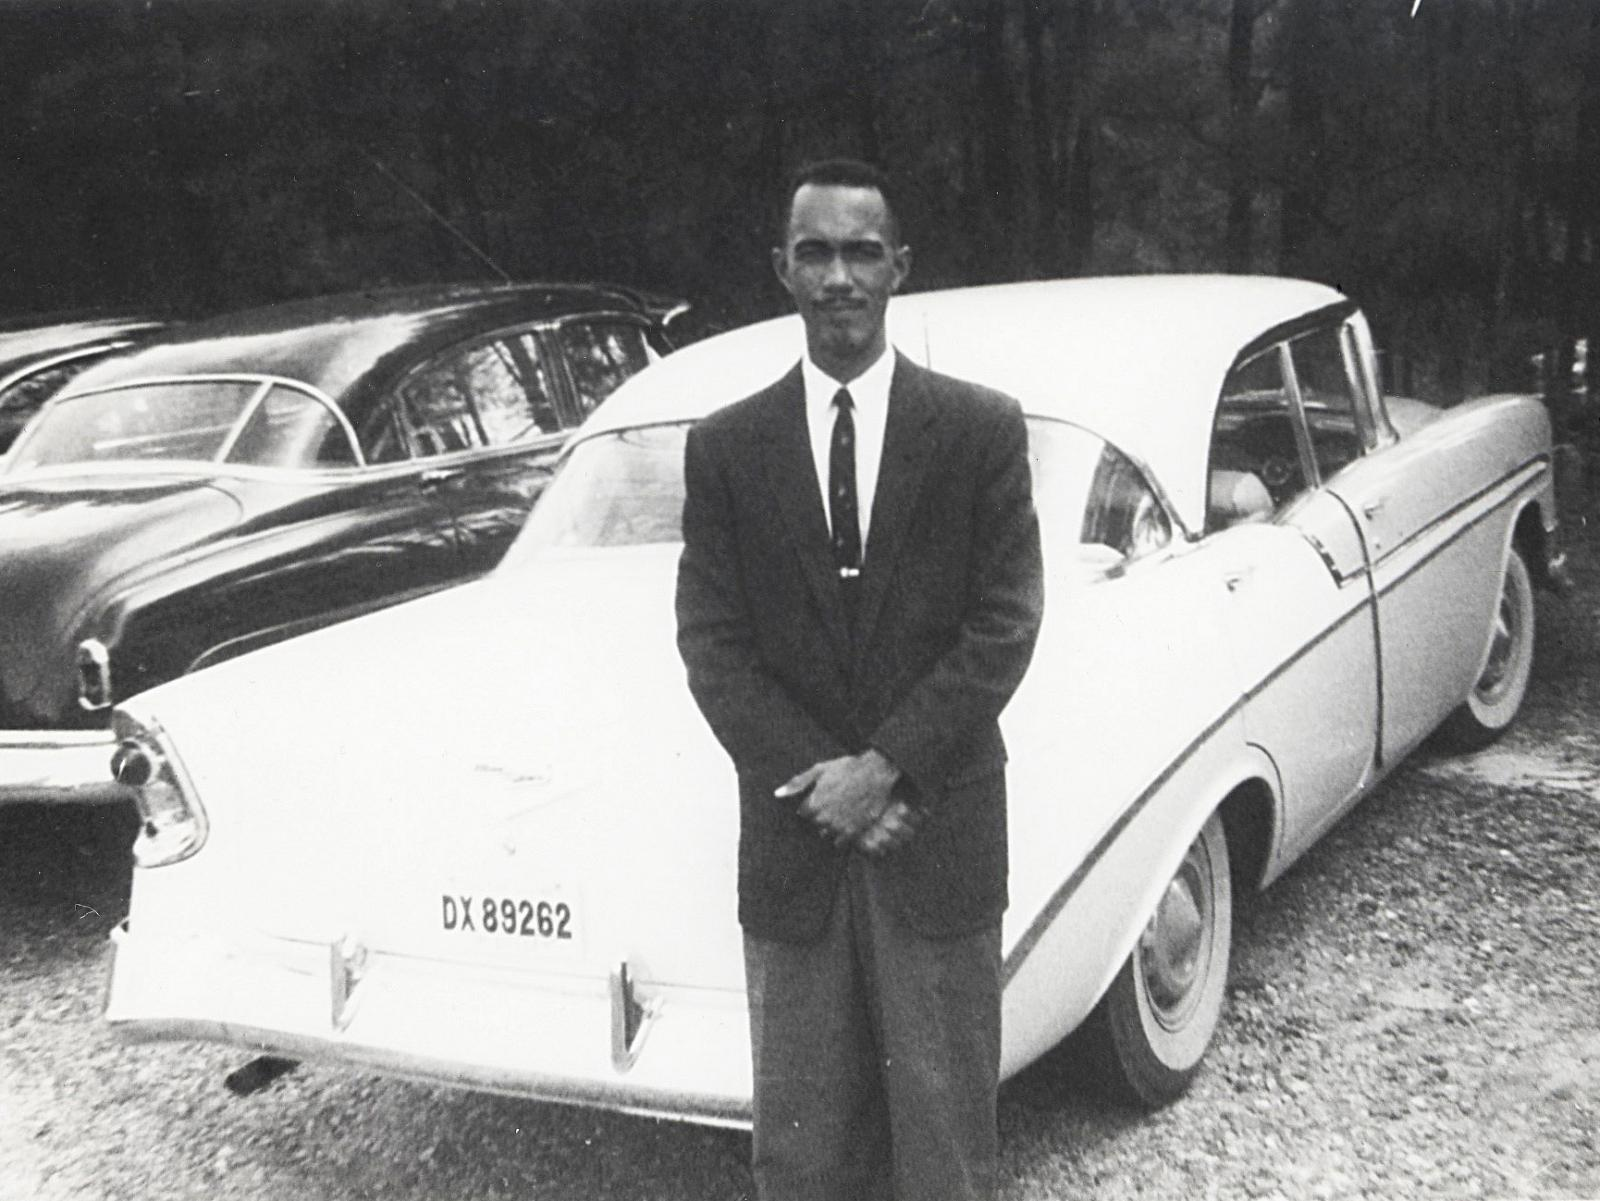 Ervin Perry in front of car